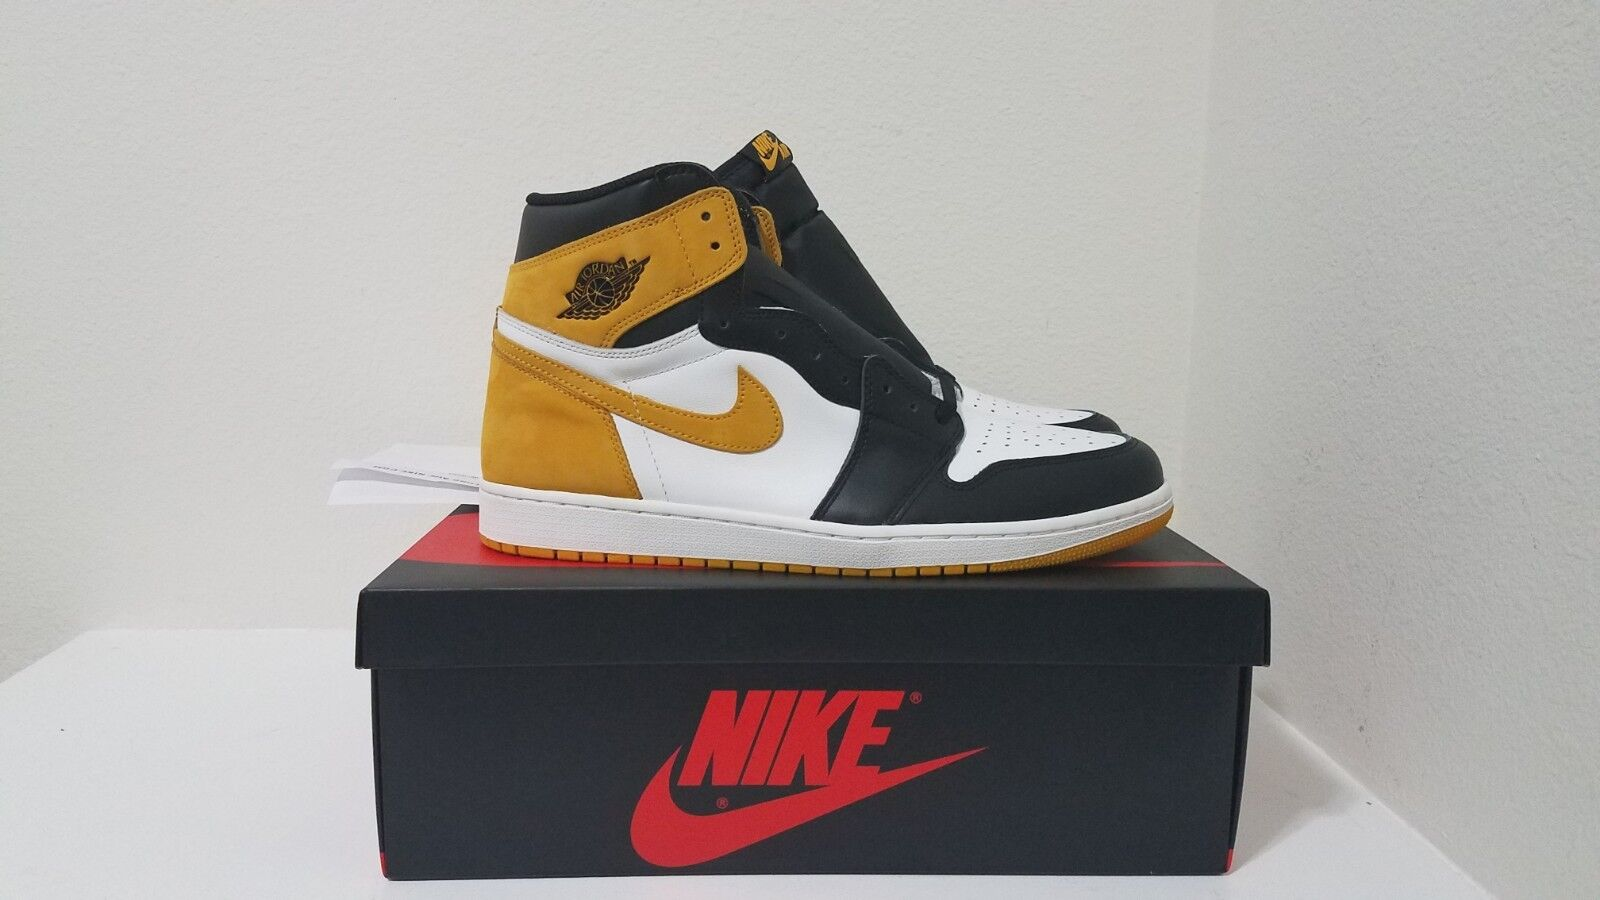 Air Jordan Retro 1 High OG Yellow Ochre 555088 109 DS w  receipt Size 13